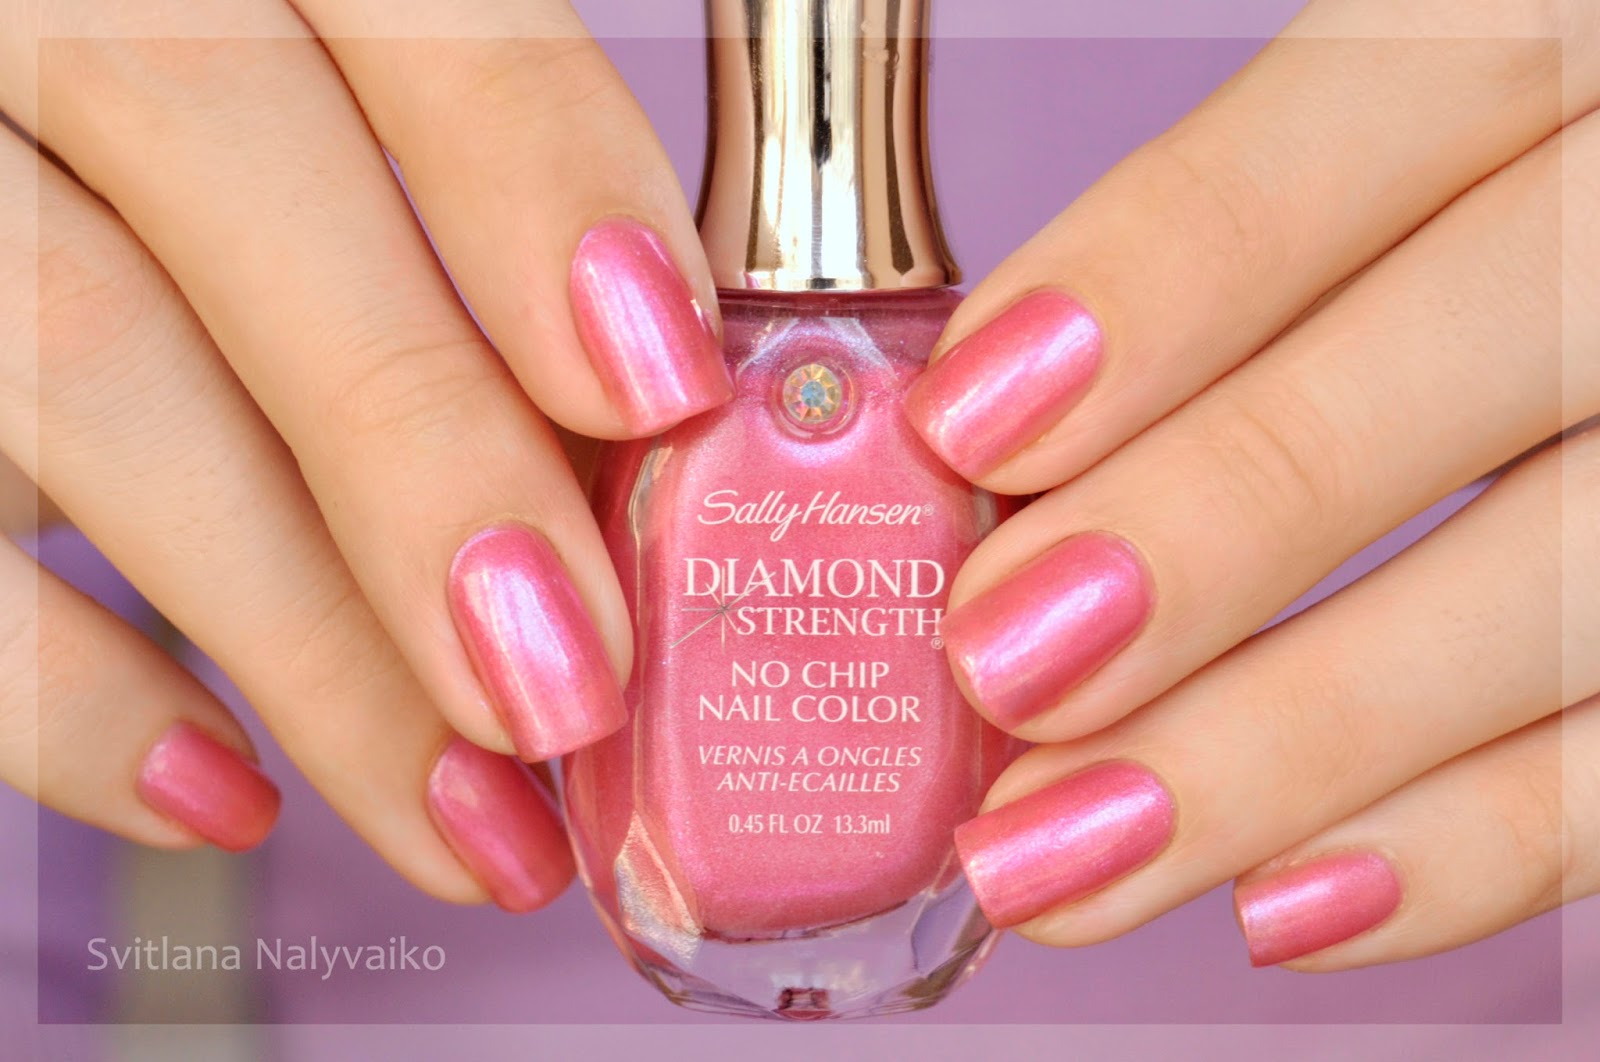 свотч Sally Hansen Dimond Strength в оттенке 320 Must-Have Iris swatch